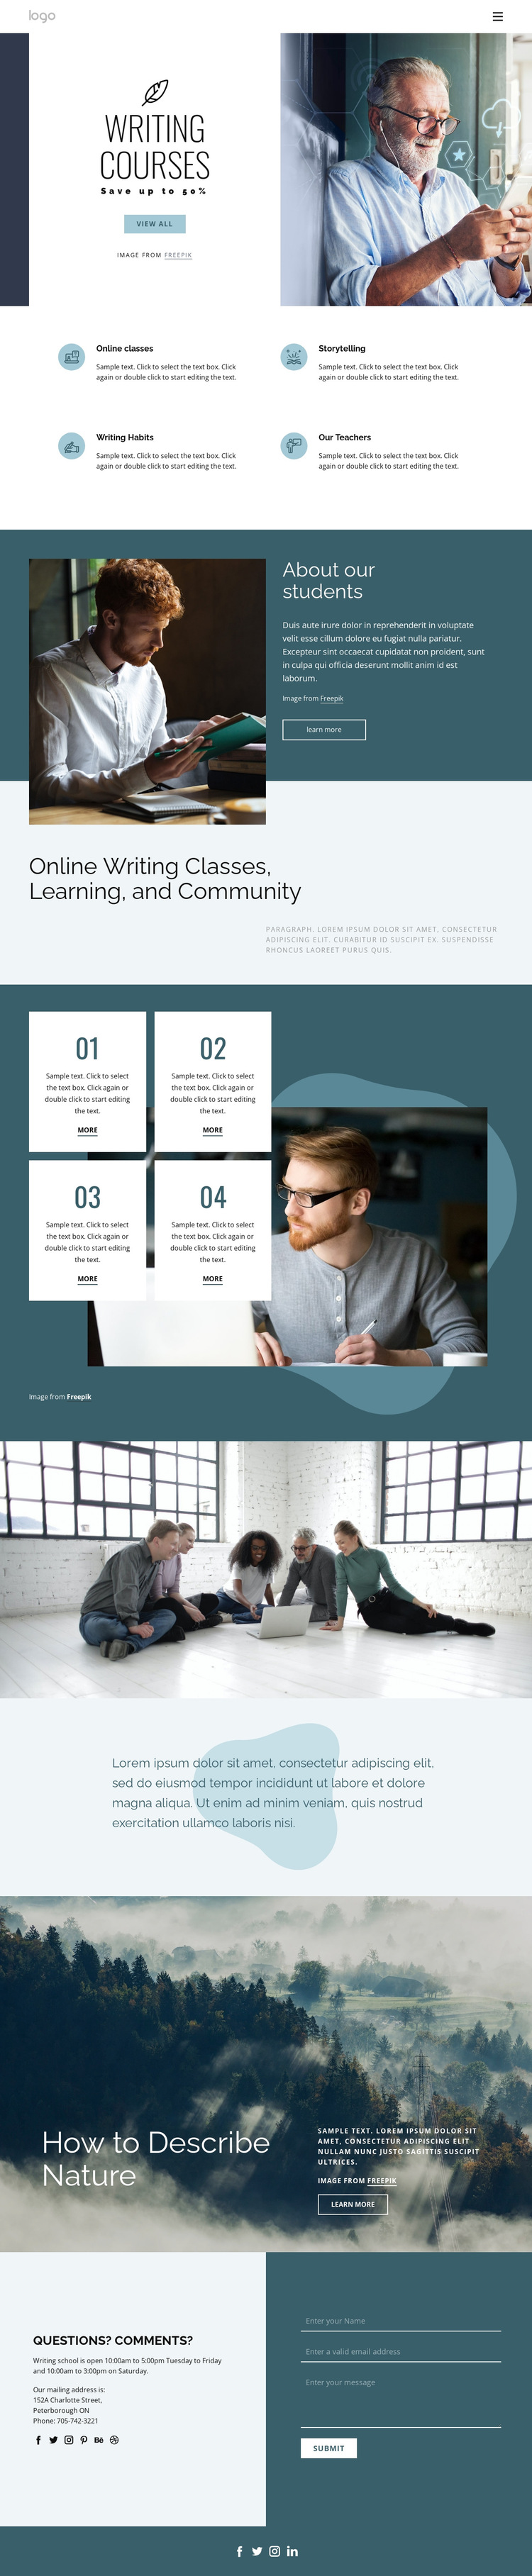 Creative writing courses HTML5 Template